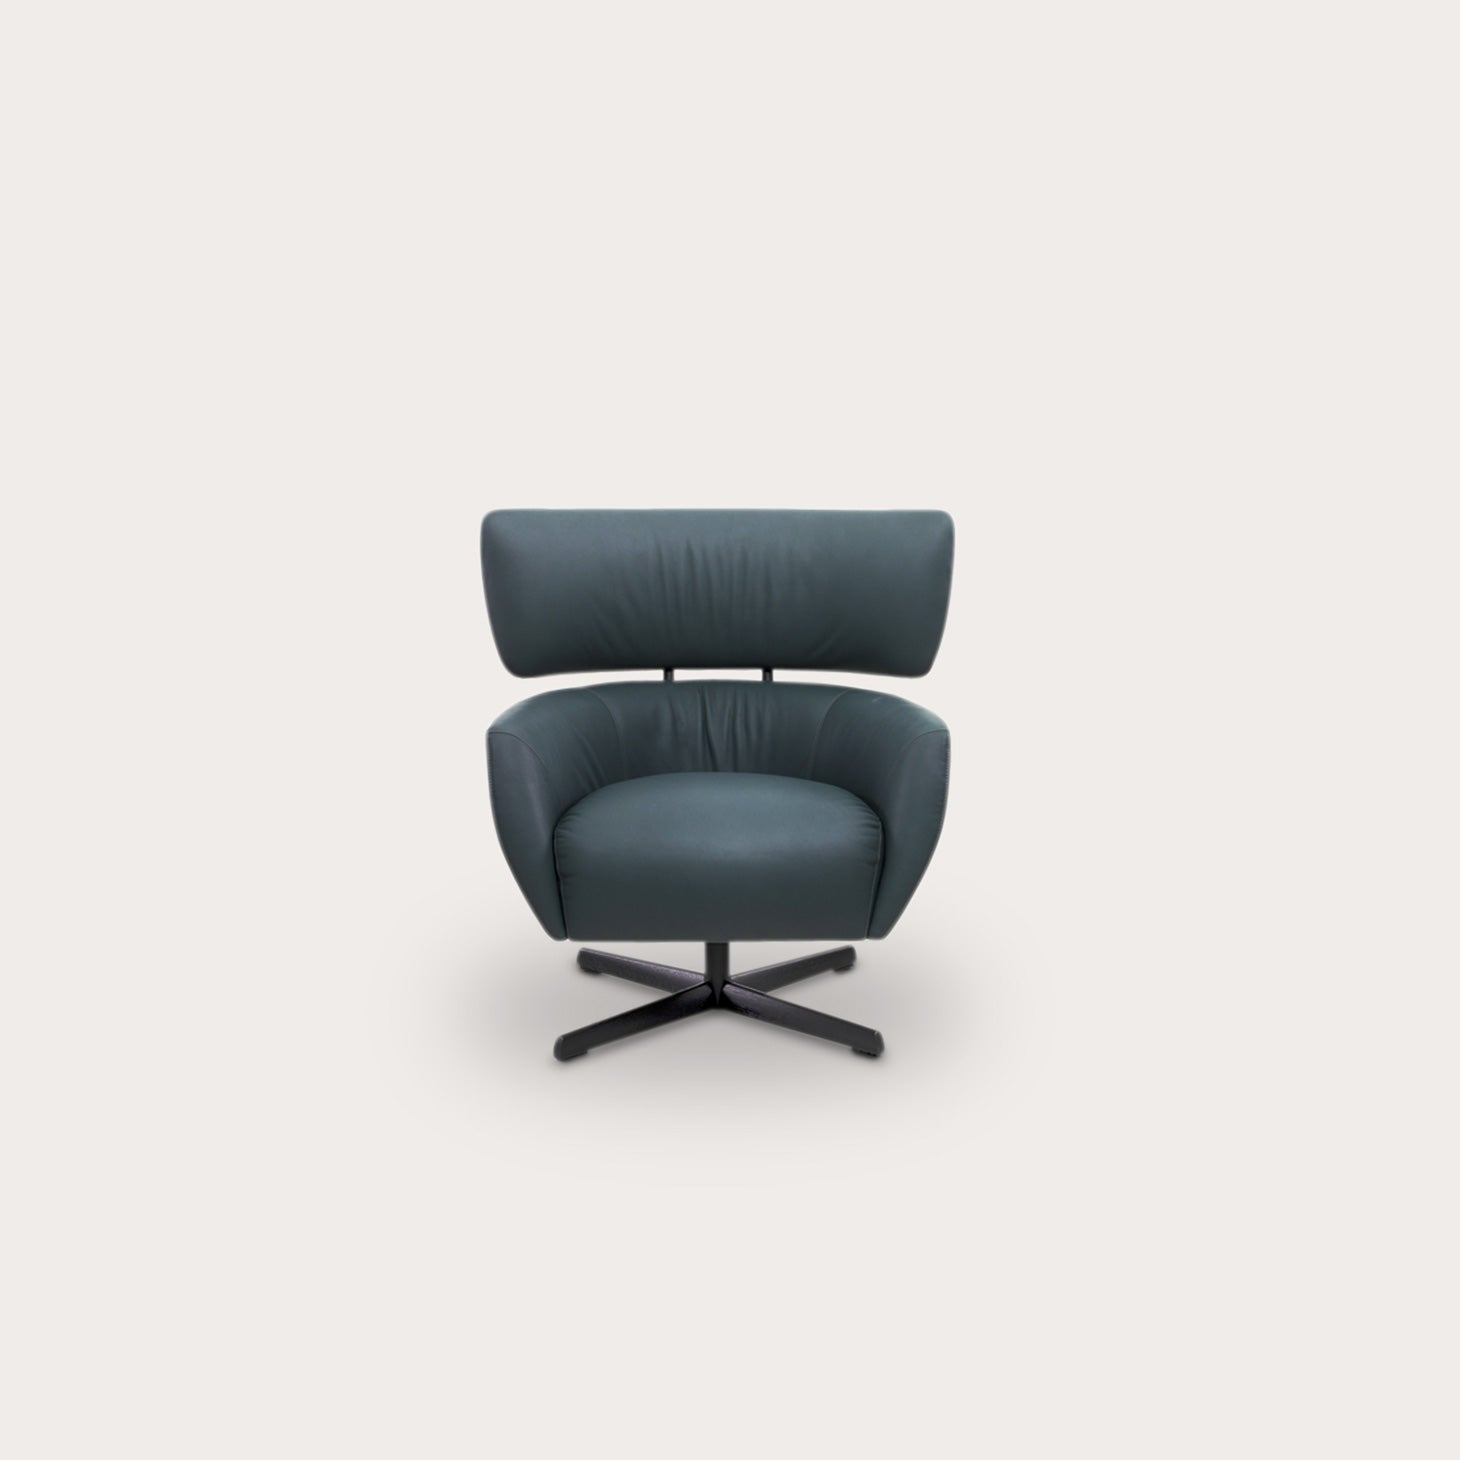 George Lounge Chair Seating Gijs Papavoine Designer Furniture Sku: 134-120-10092